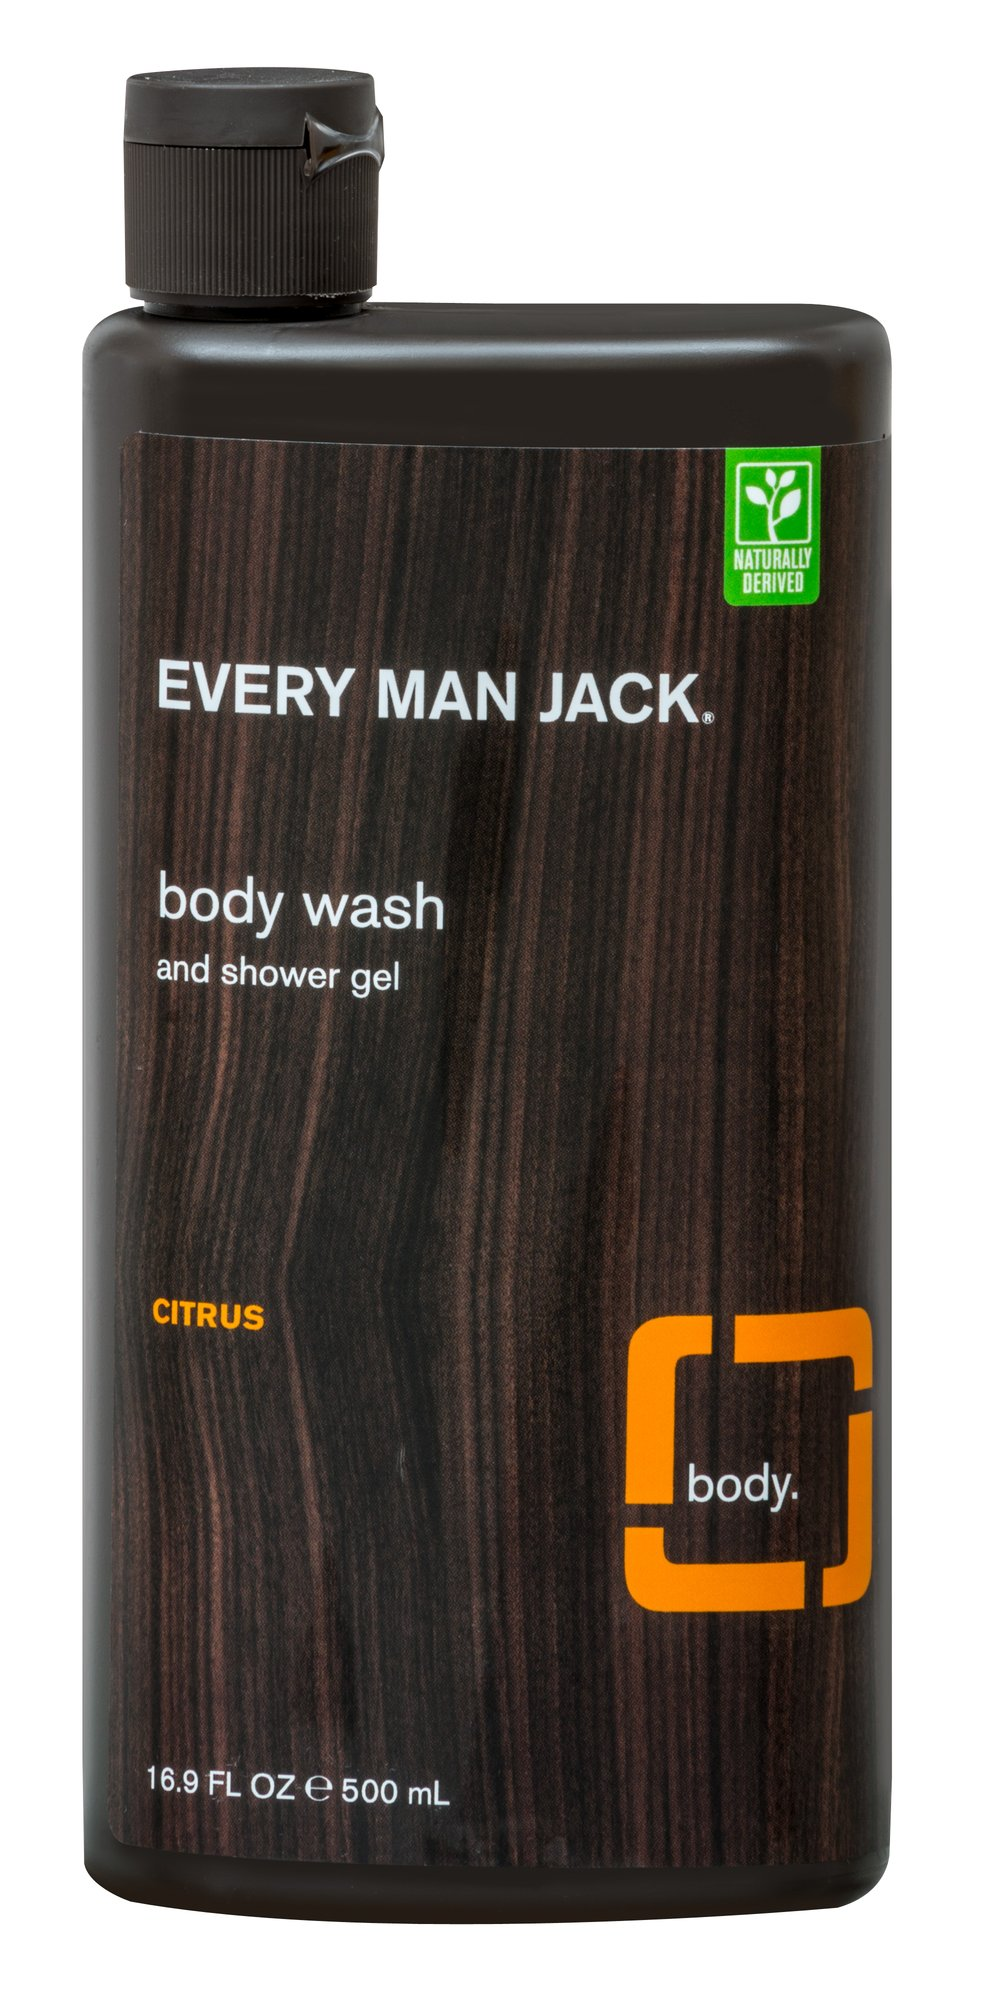 Every Man Jack® Citrus Scrub Body Wash & Shower Gel